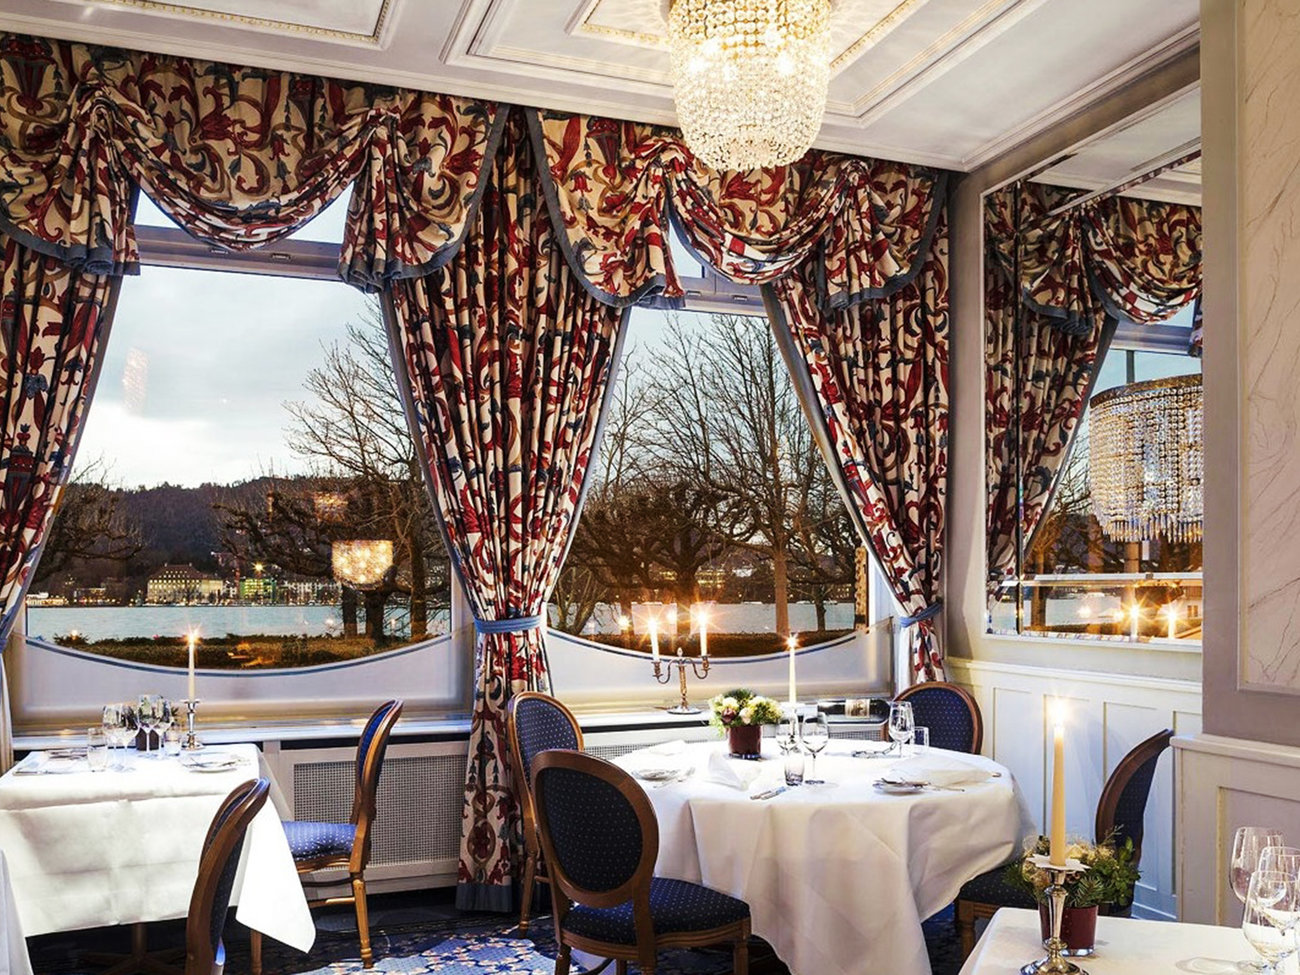 Eden au lac Restaurant in Zurich